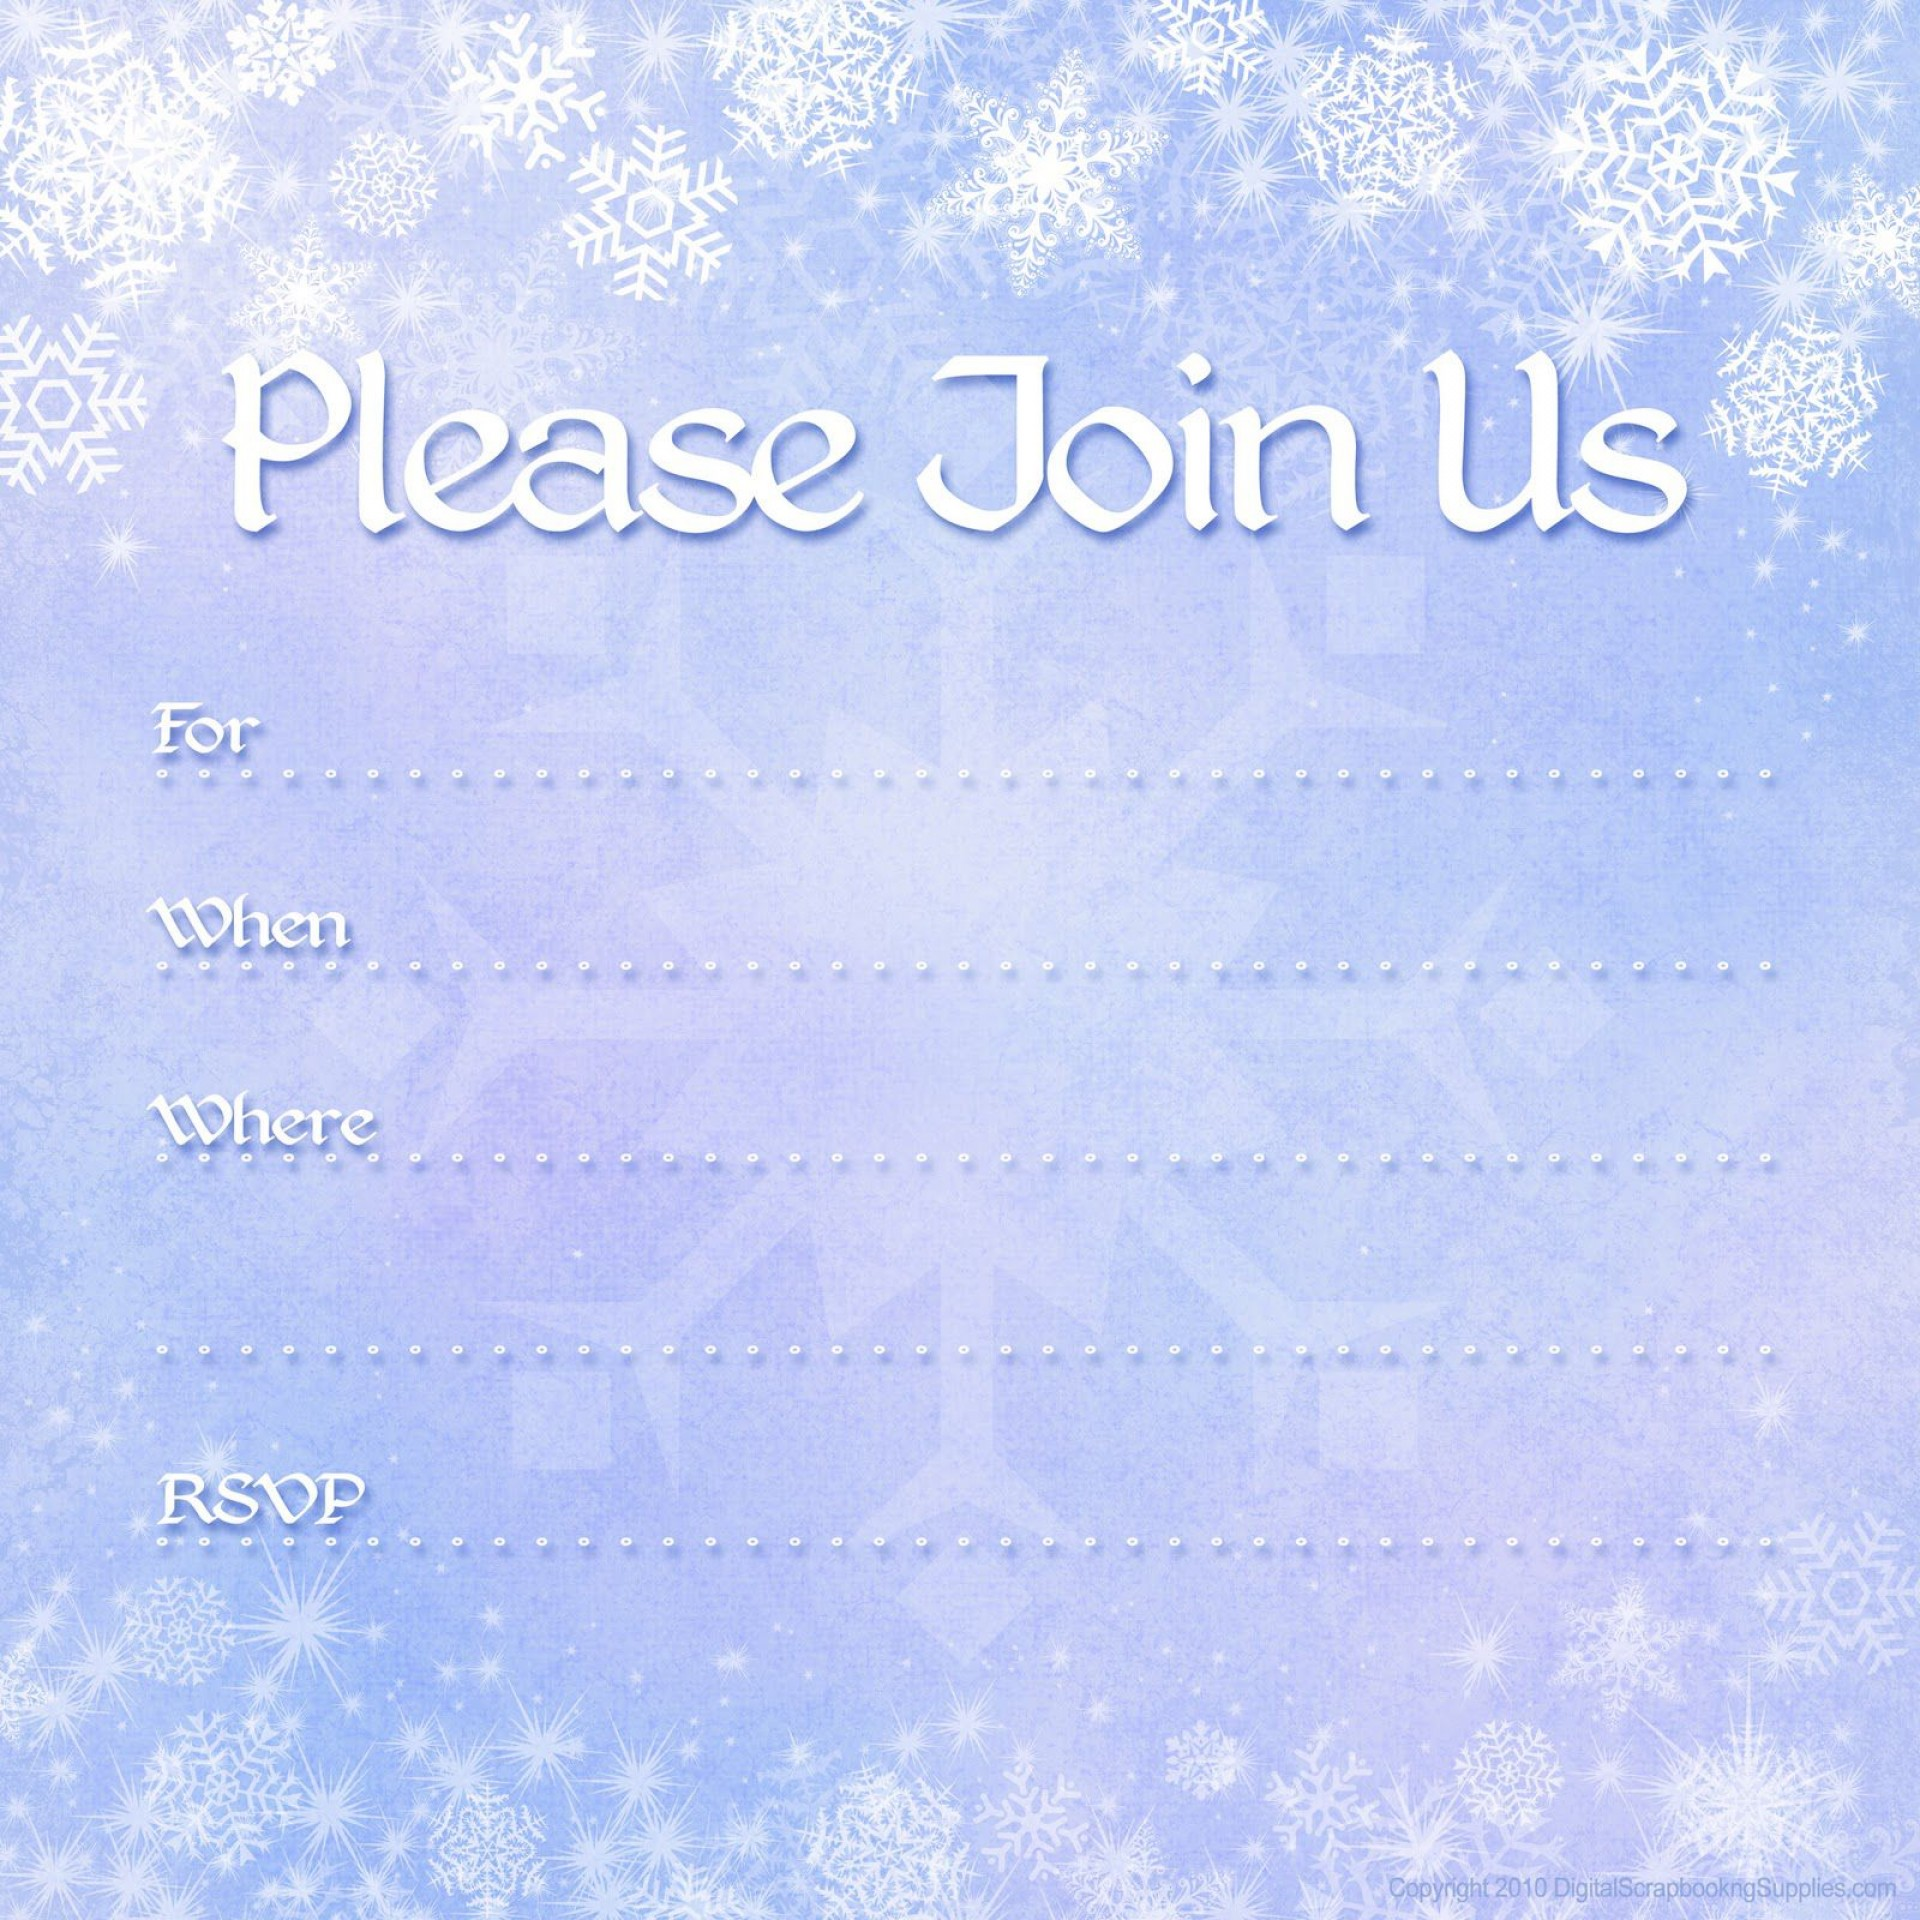 006 Wondrou Free Holiday Party Flyer Template Word Concept 1920